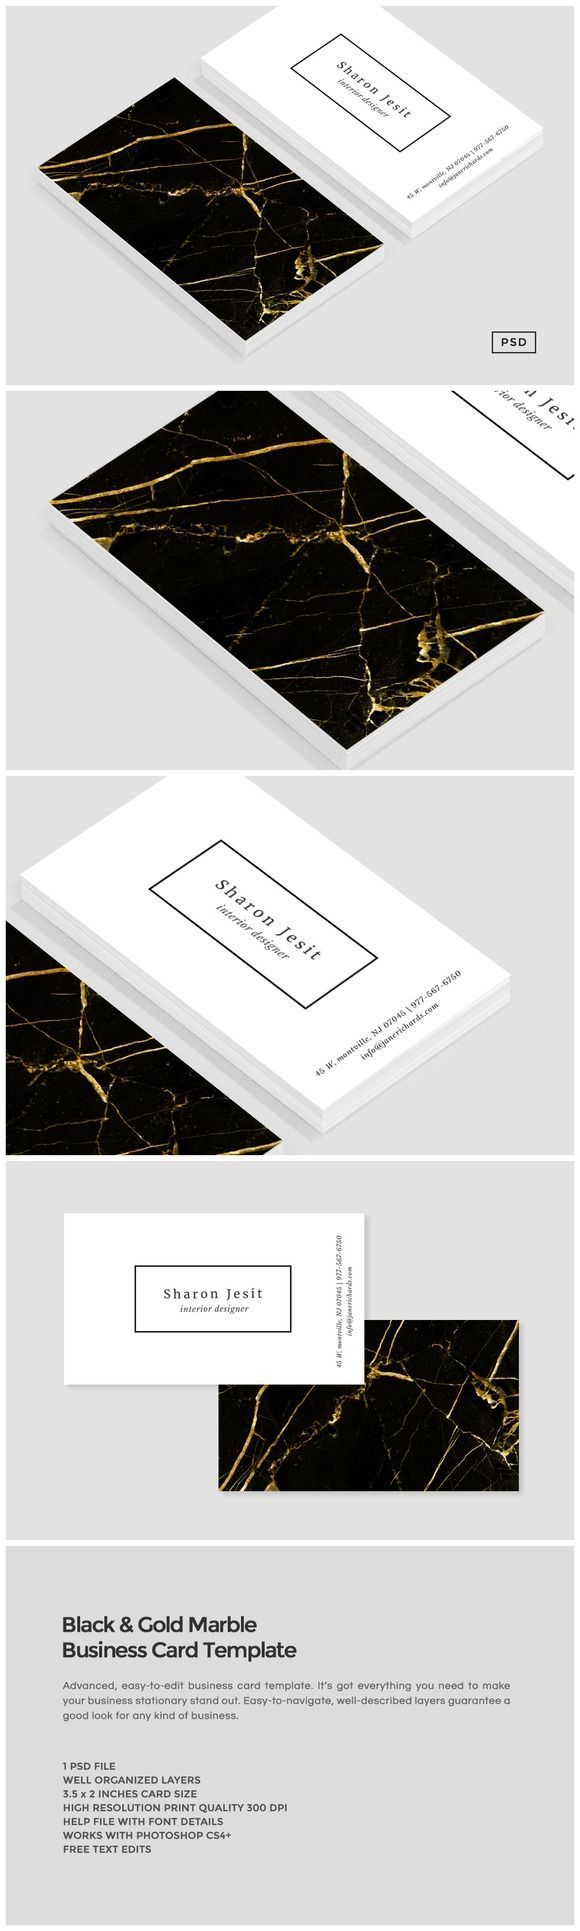 601 best Business Cards Design images on Pinterest | Business card ...